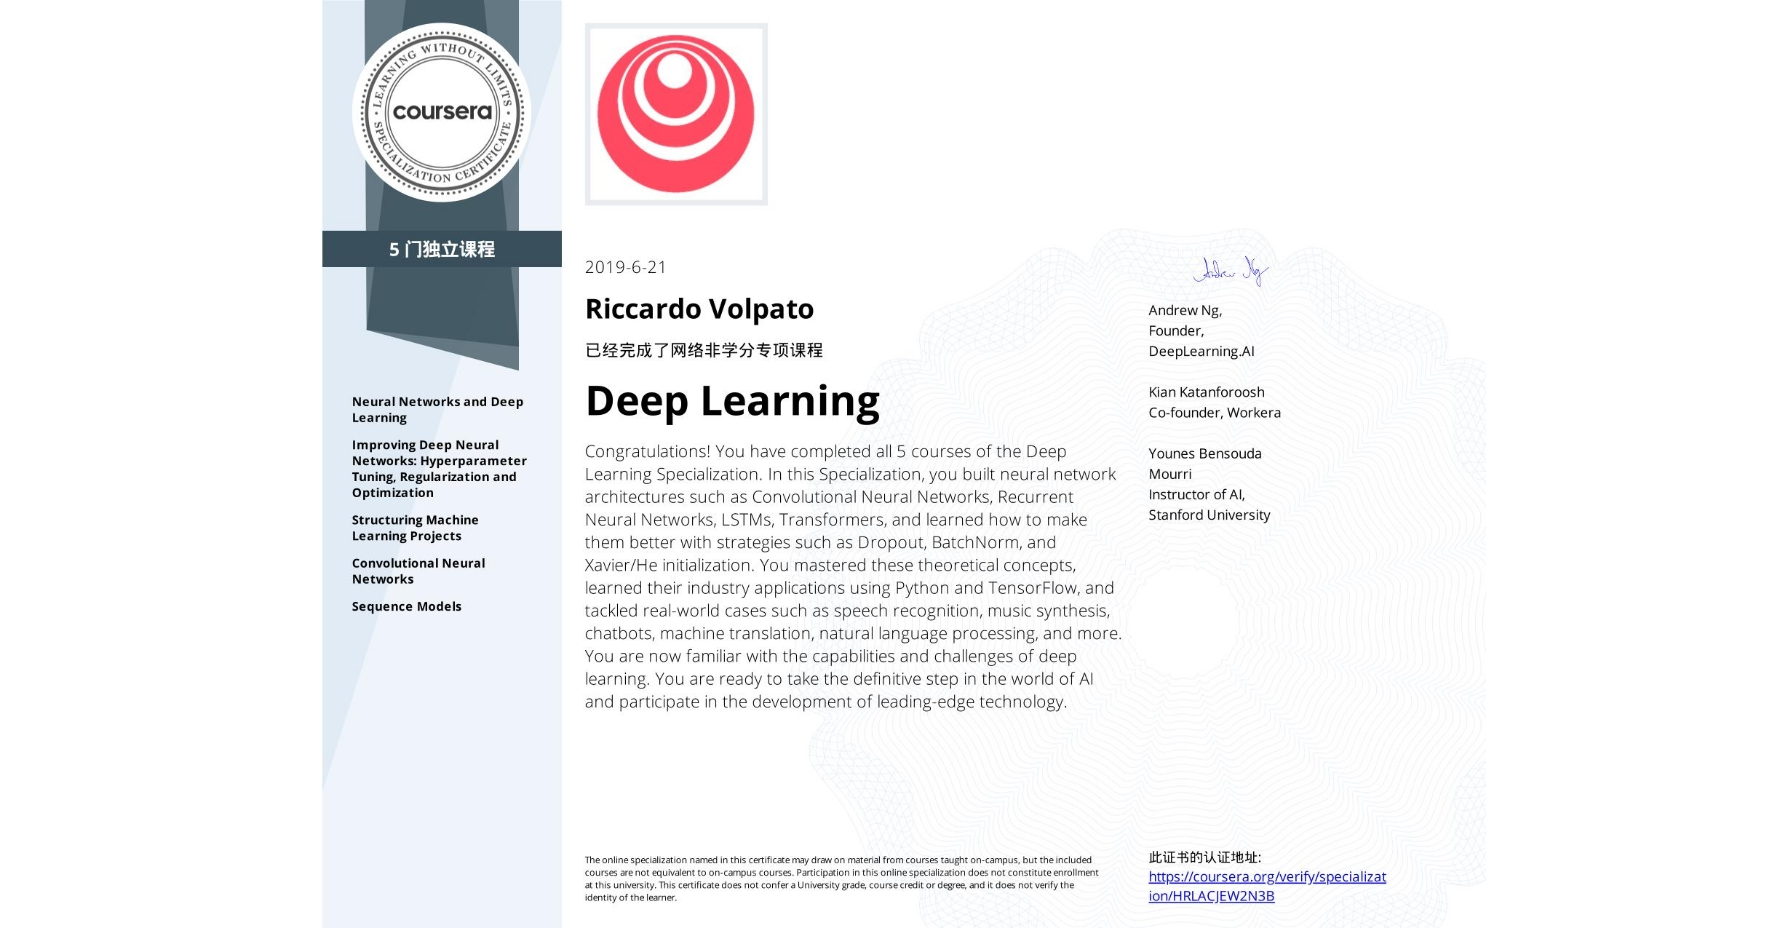 View certificate for Riccardo Volpato, Deep Learning, offered through Coursera. The Deep Learning Specialization is designed to prepare learners to participate in the development of cutting-edge AI technology, and to understand the capability, the challenges, and the consequences of the rise of deep learning. Through five interconnected courses, learners develop a profound knowledge of the hottest AI algorithms, mastering deep learning from its foundations (neural networks) to its industry applications (Computer Vision, Natural Language Processing, Speech Recognition, etc.).